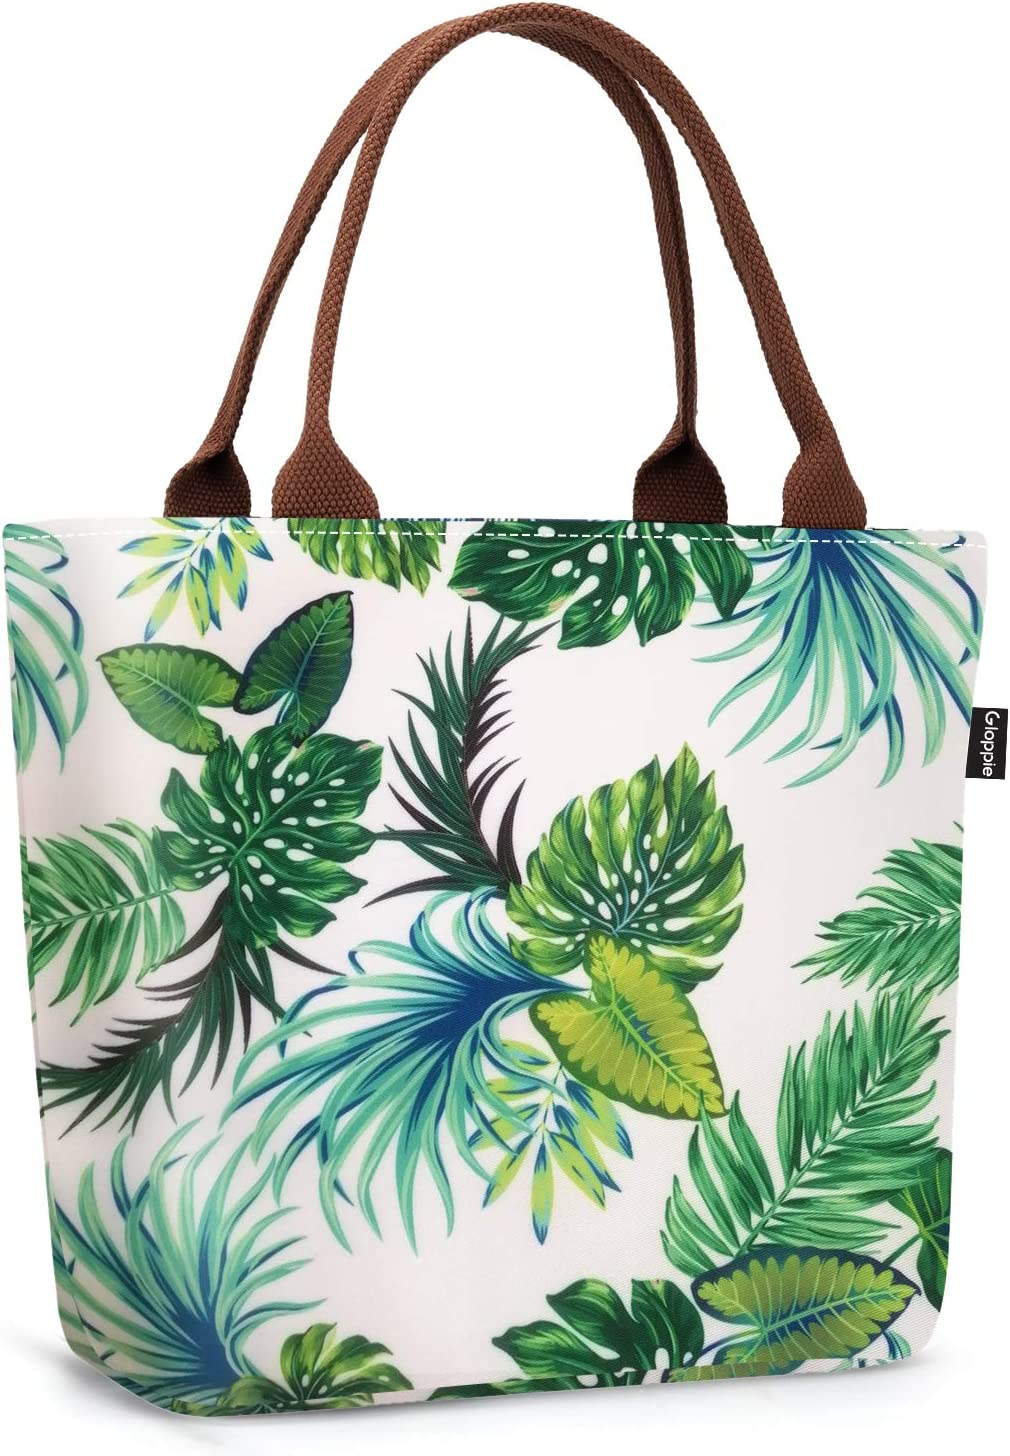 Gloppie Lunch Bags Leakproof Lunch Tote for Women Insulated Lunch Box Purse Food Delivery Cooler for Adults Ladies for Work Picnic Beach 9L Palm Leaf